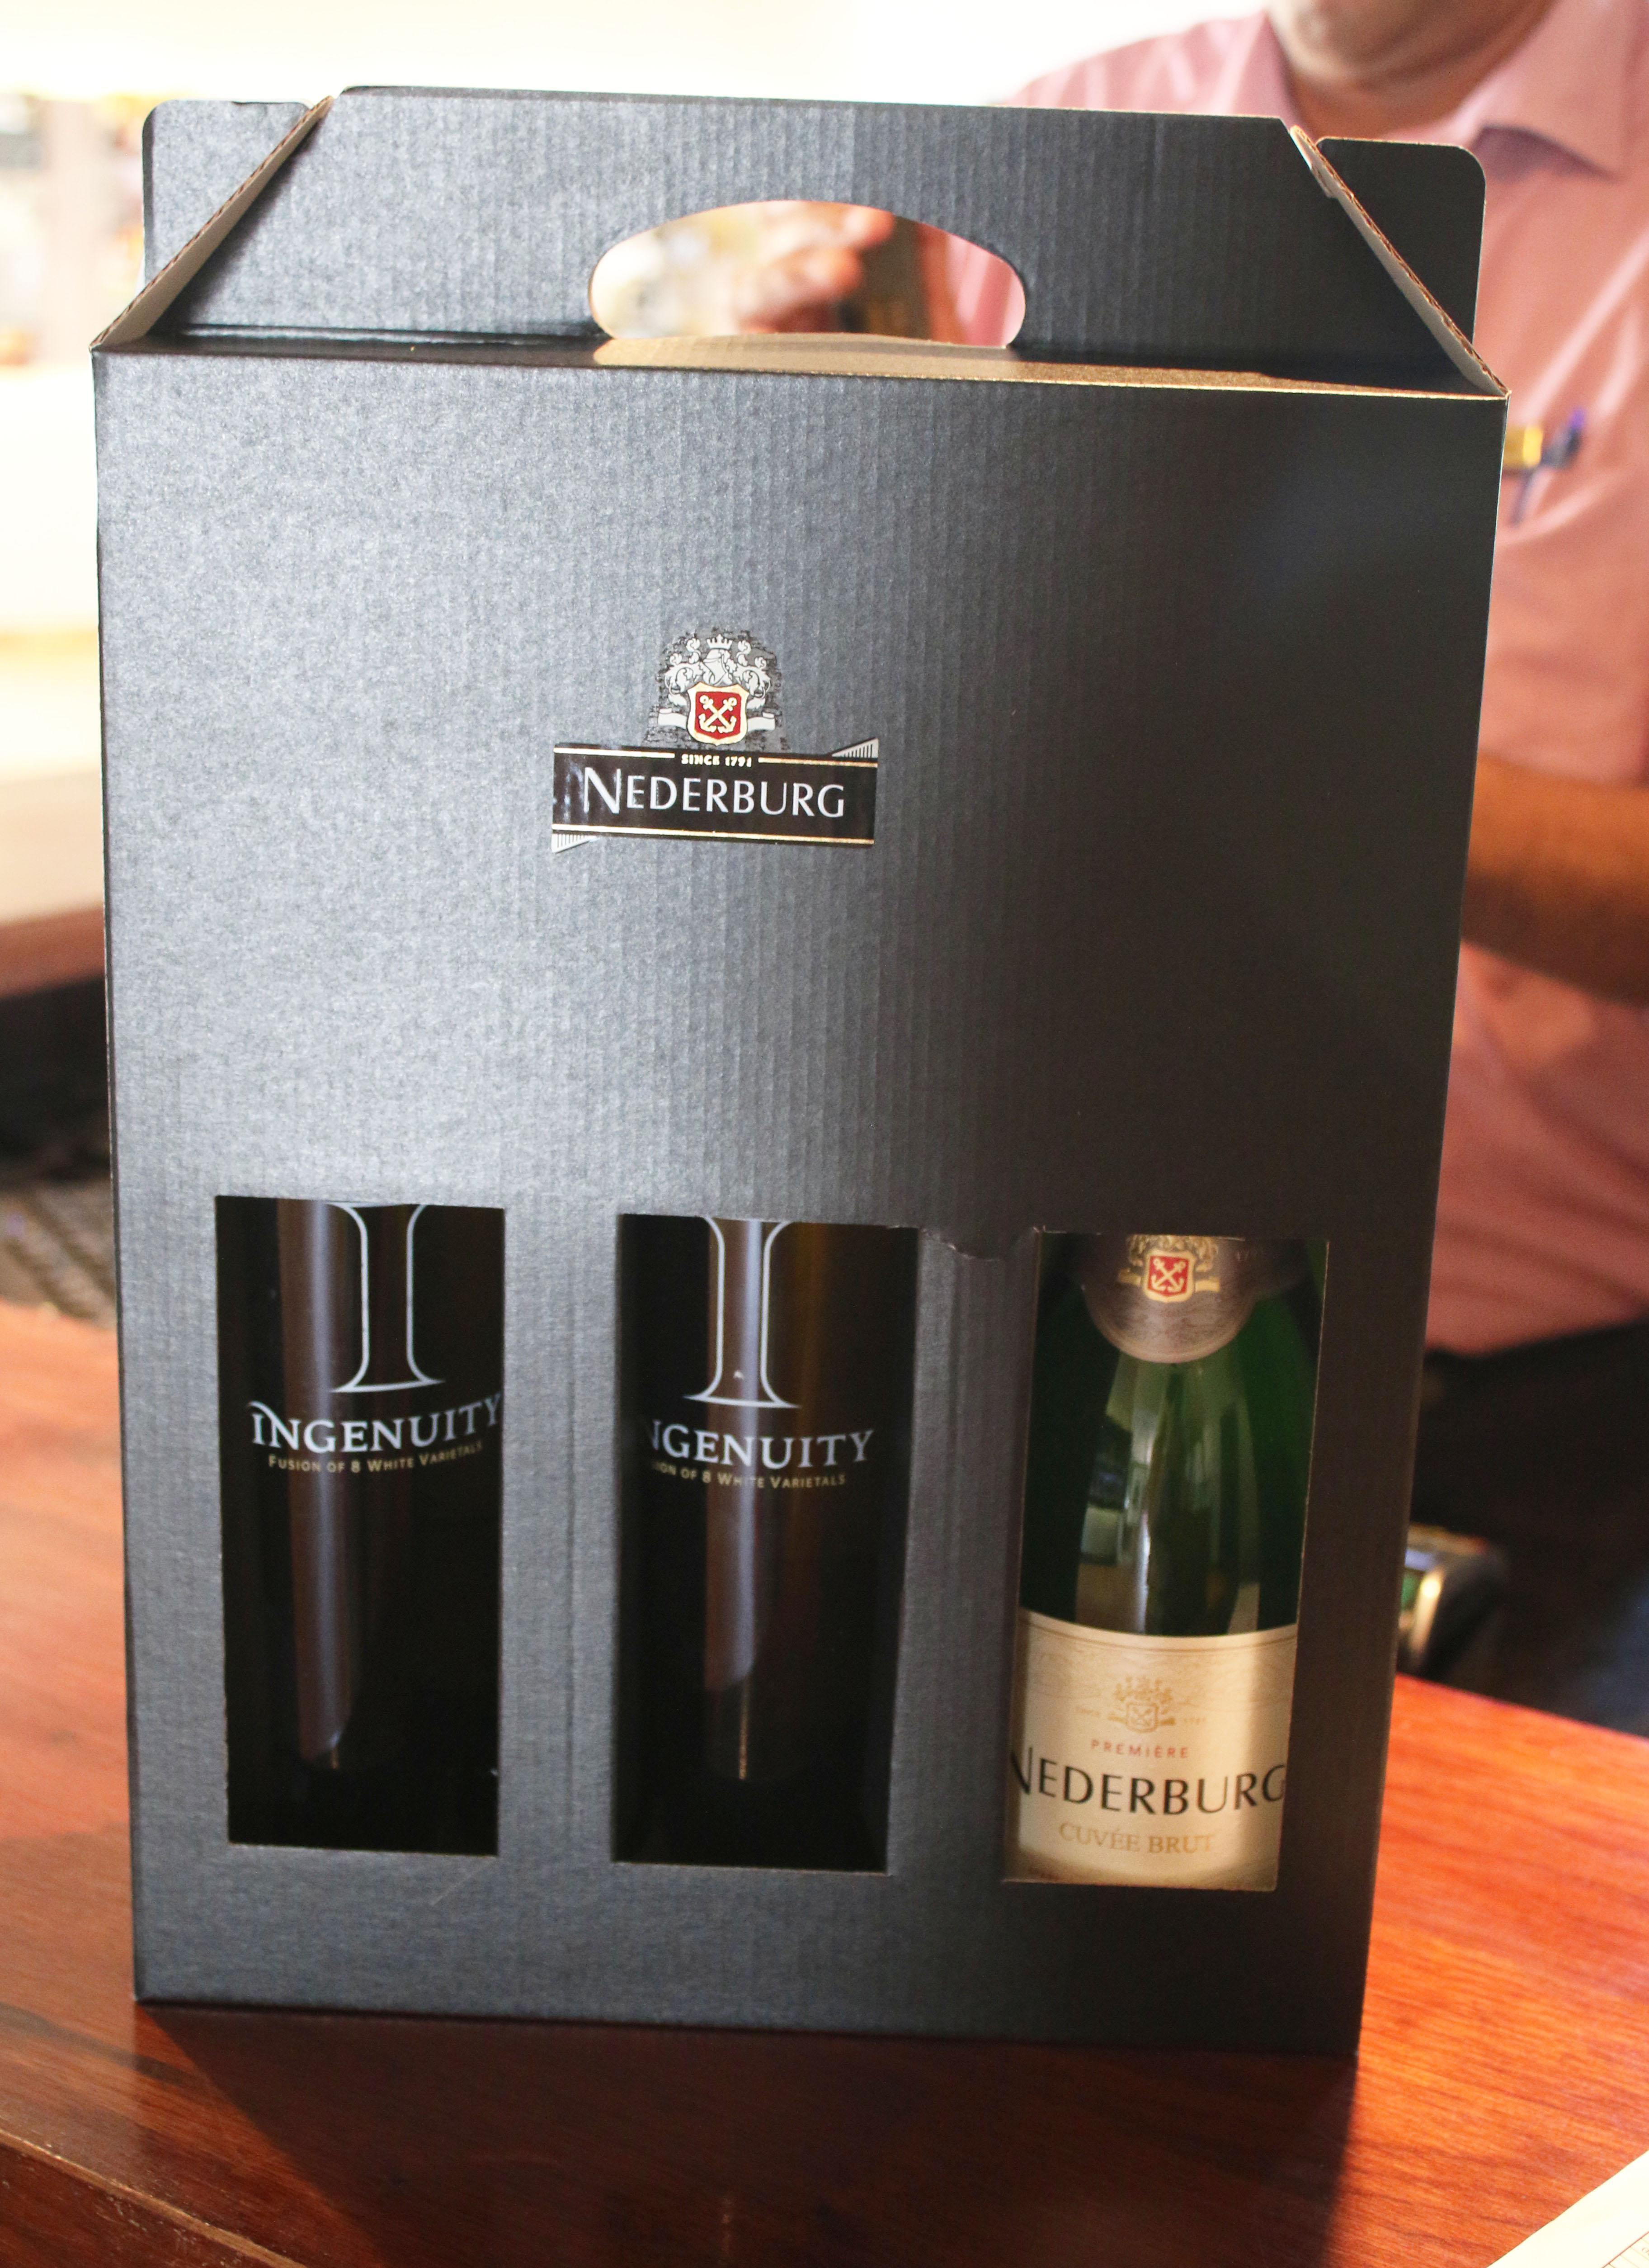 Our Nederburg purchase